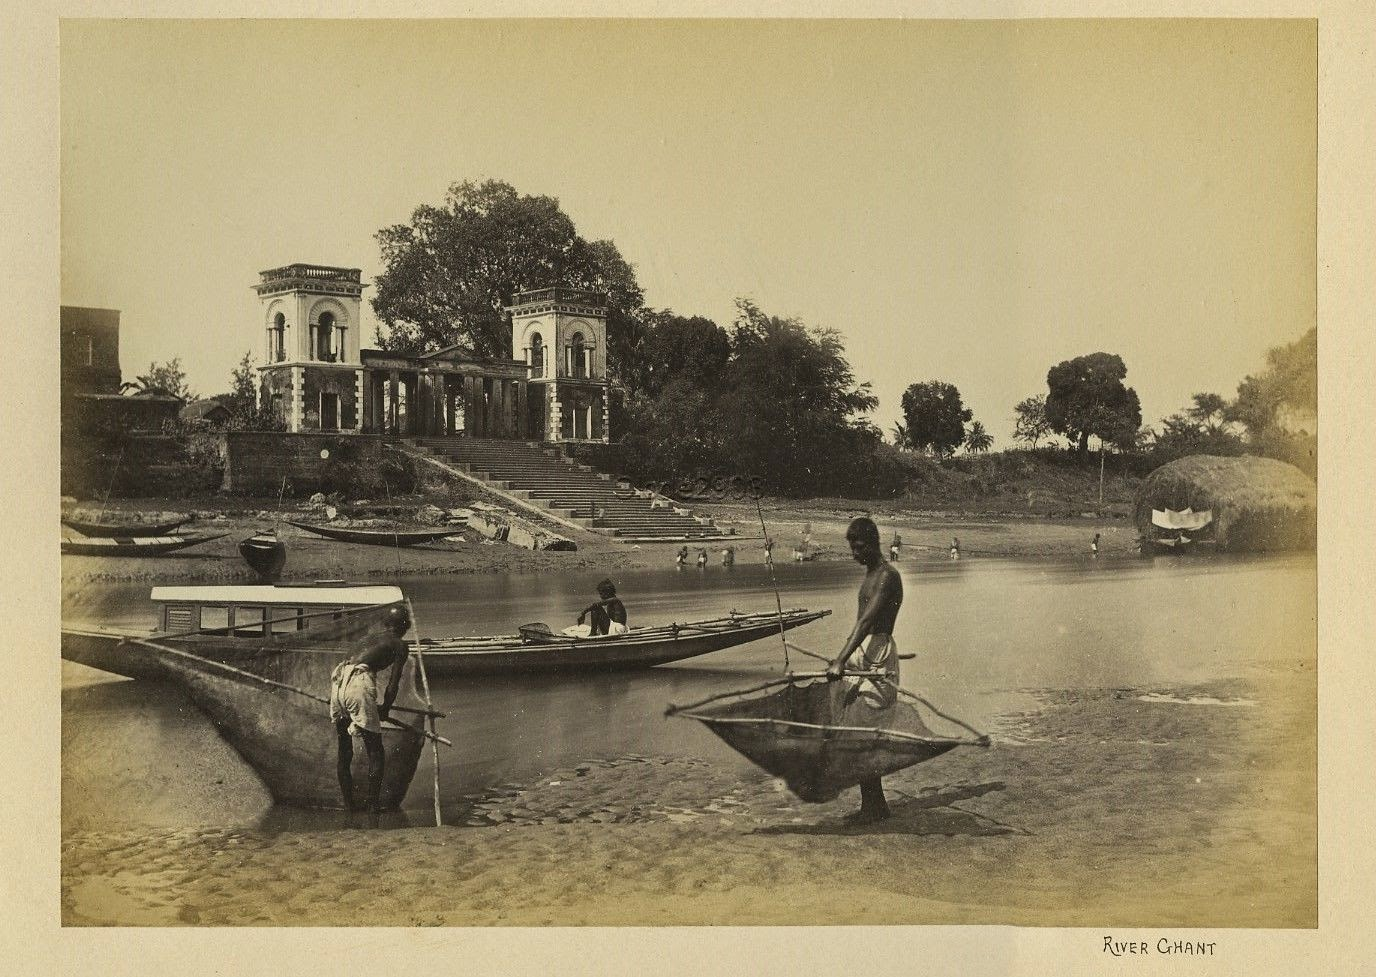 Fishermen Working in a River - India c1880's